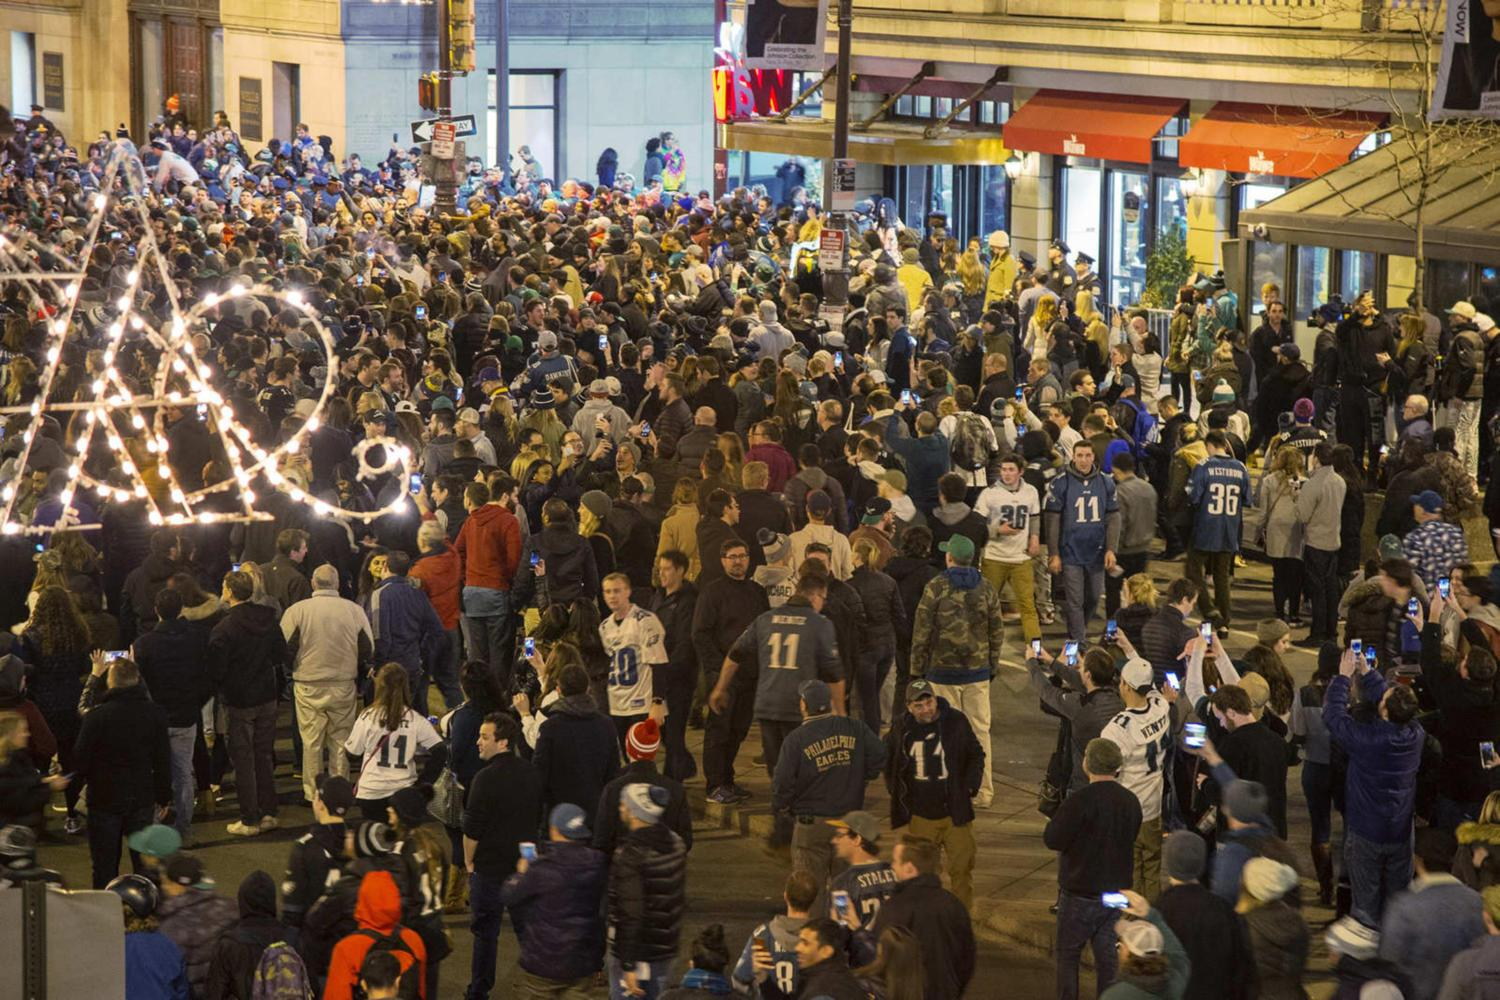 Crowds of Philadelphia Eagles fans celebrate at Broad and Walnut streets after the Eagles won the NFC Championship game over the Minnesota Vikings on Sunday. (Tom Gralish/Philadelphia Inquirer/TNS)